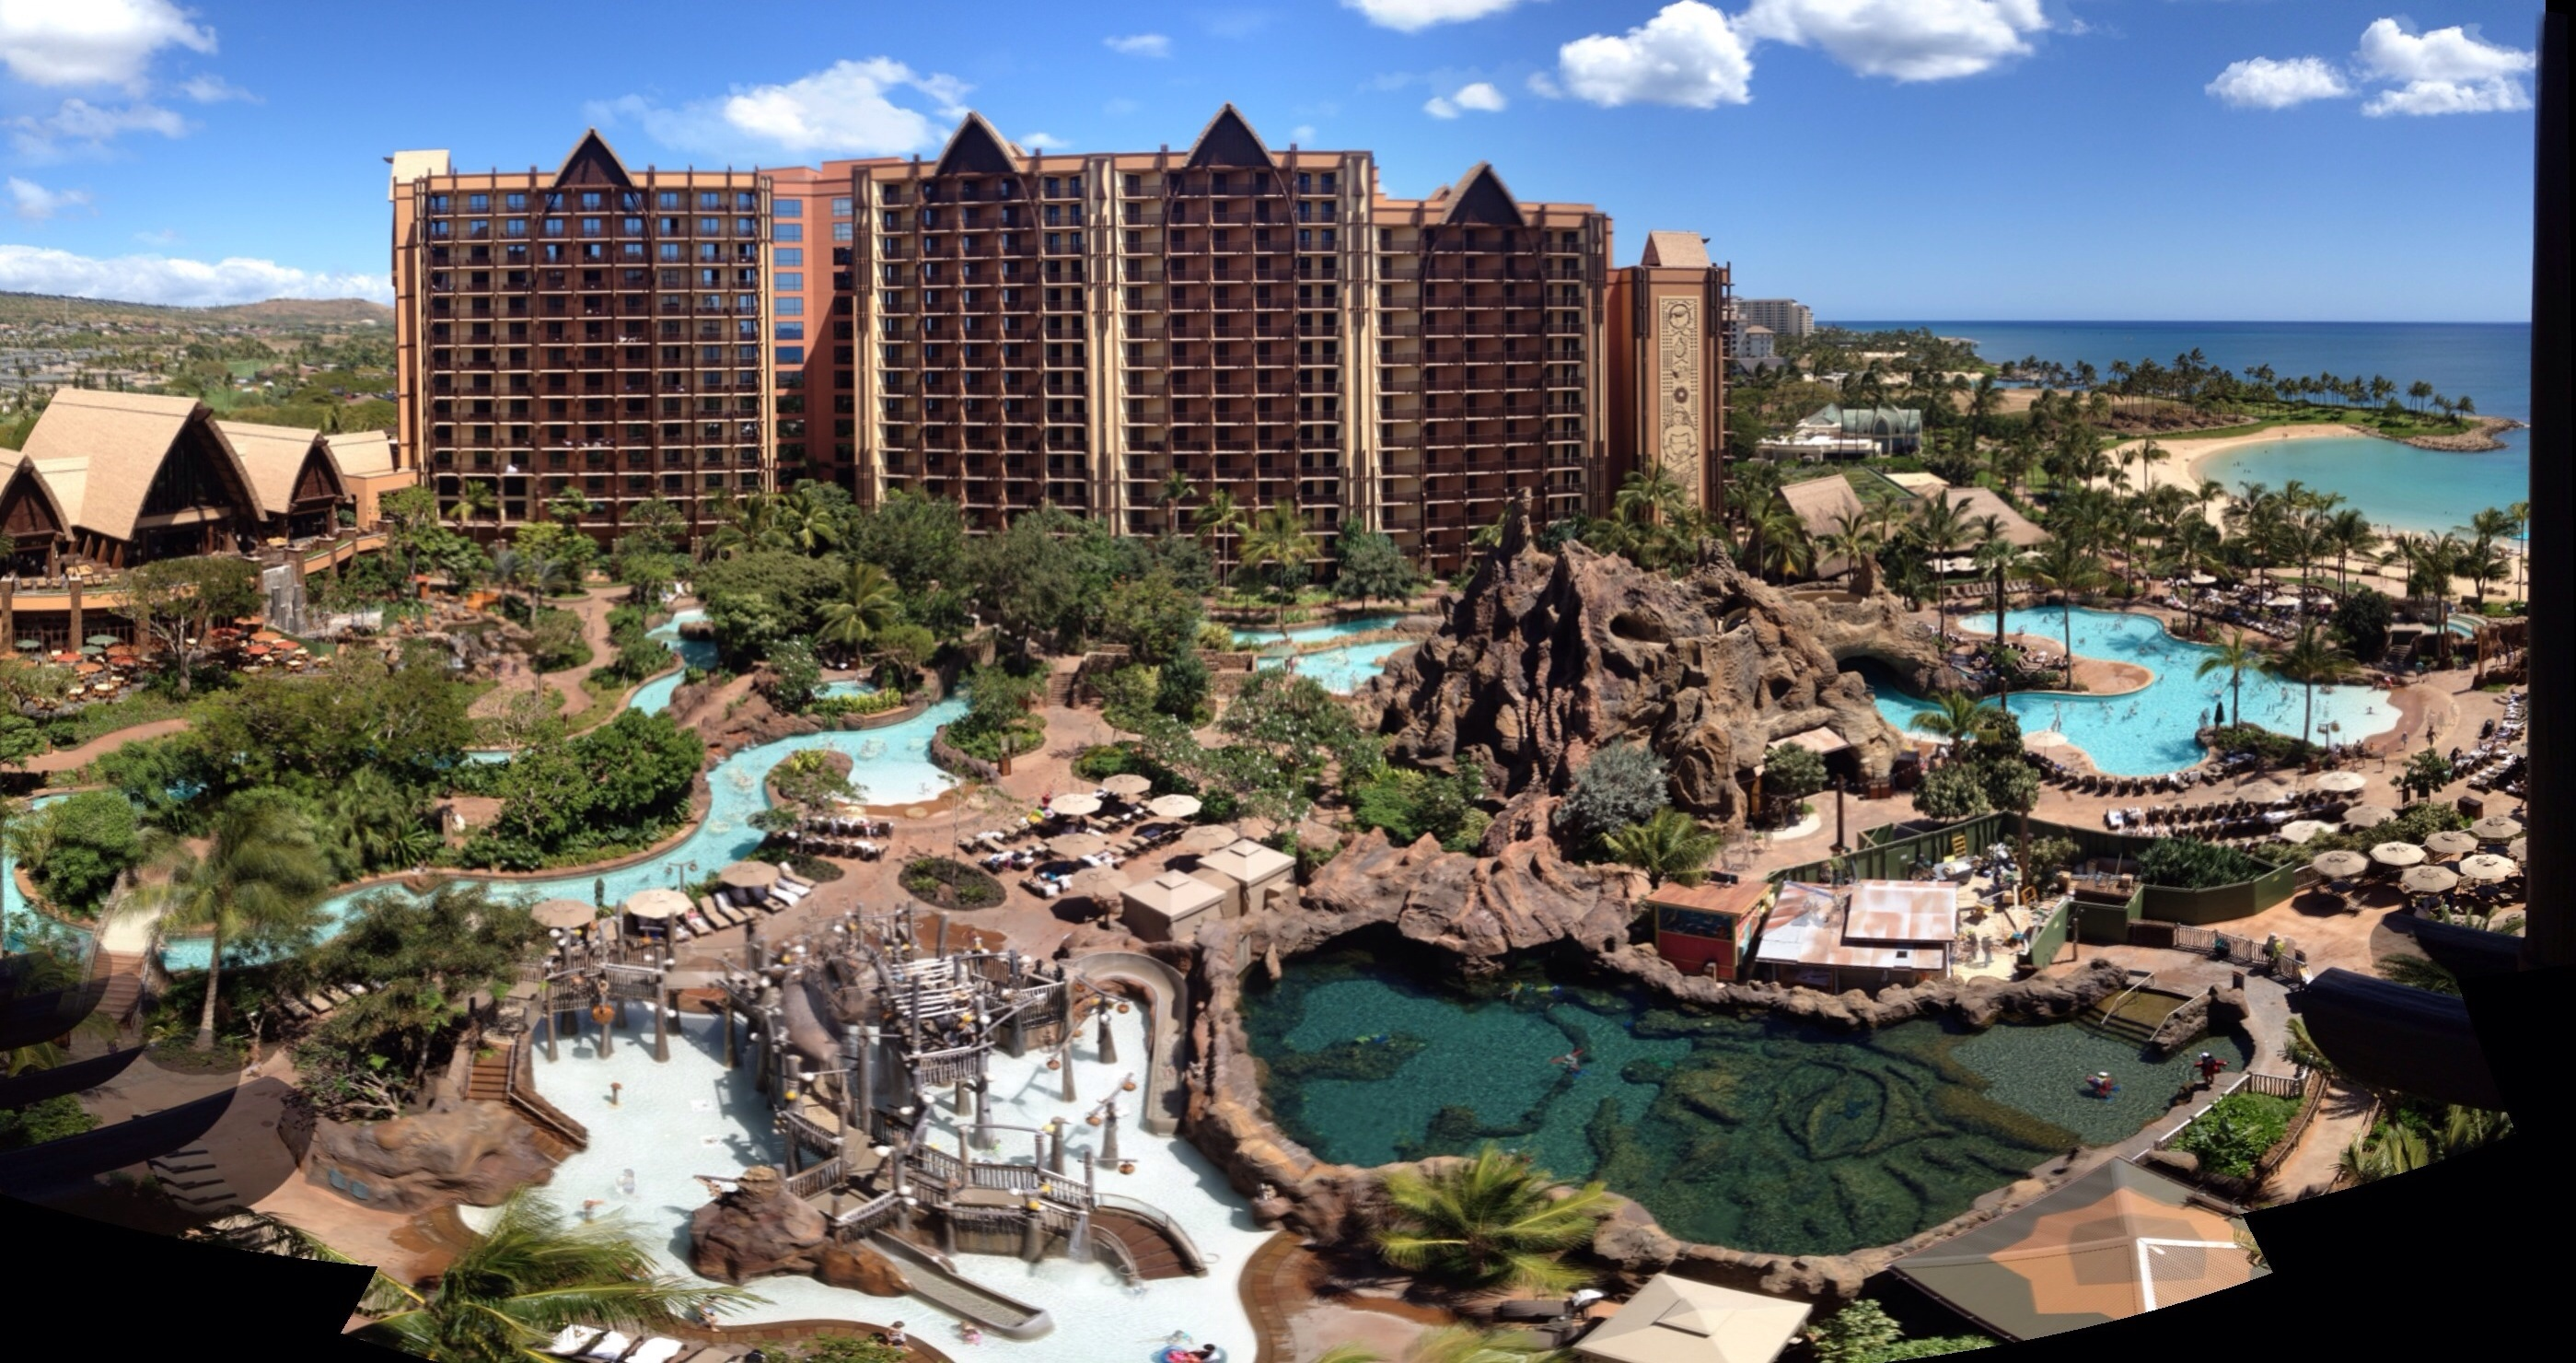 Aulani Disney Vacation Club Villas 2017 and 2018 Points Charts